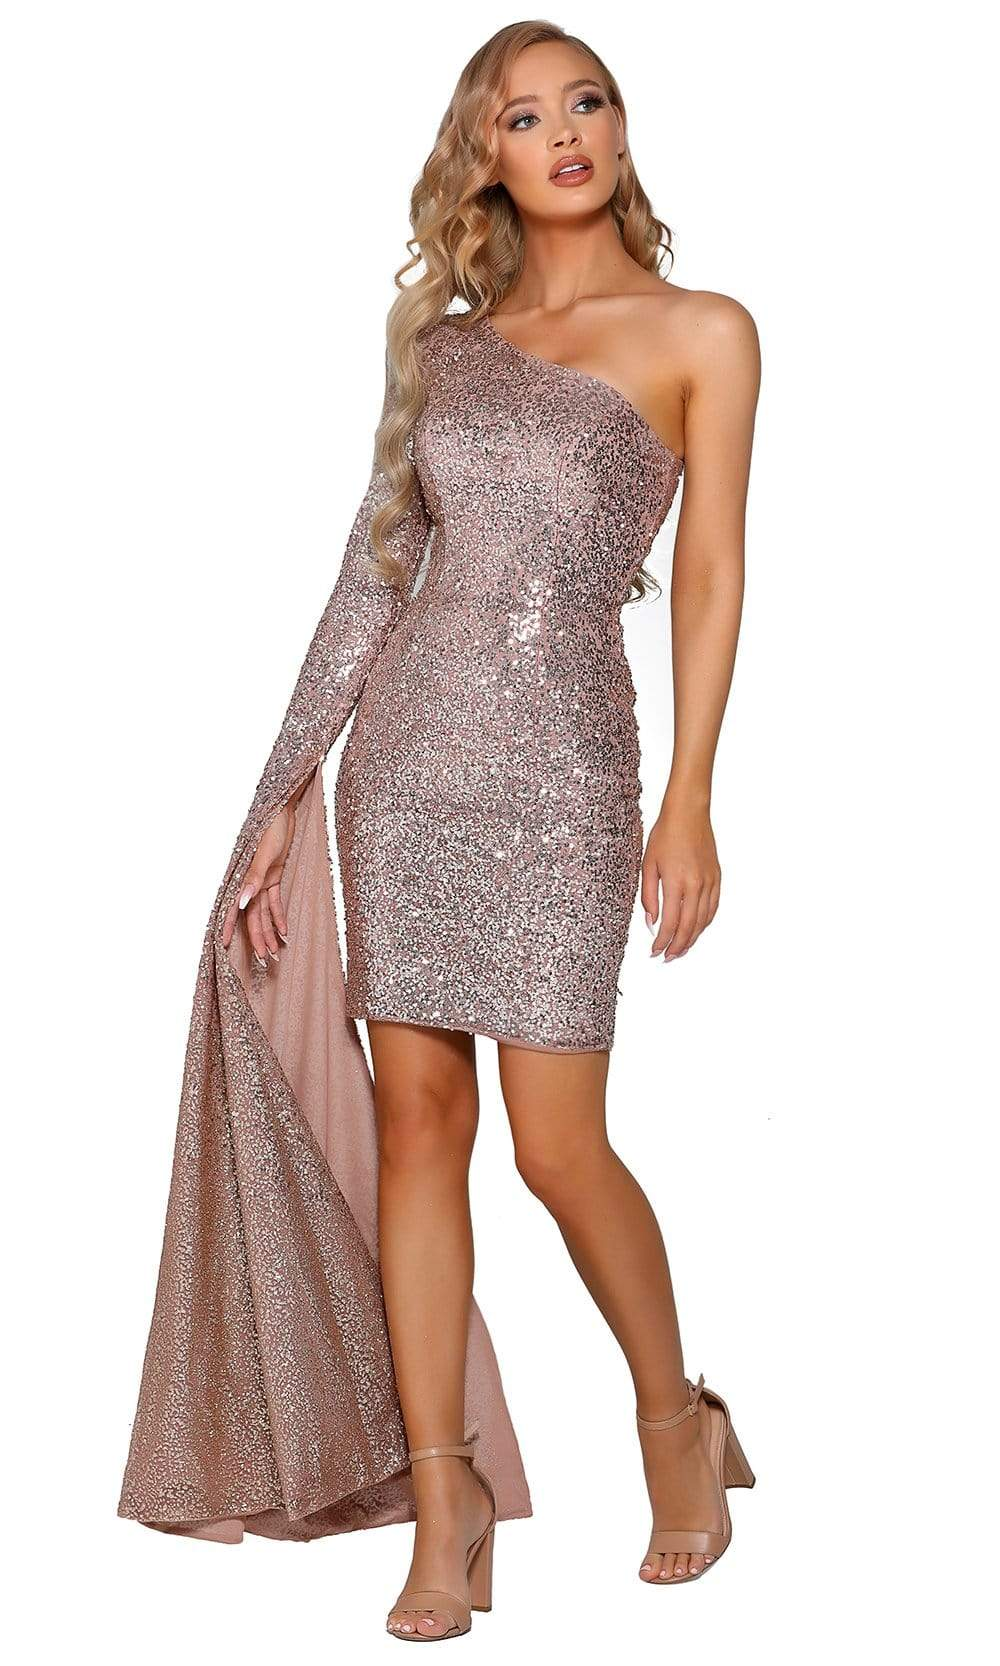 Portia and Scarlett - PS6382 Split Bell Sleeve Sequined Sheath Dress from Portia and Scarlett